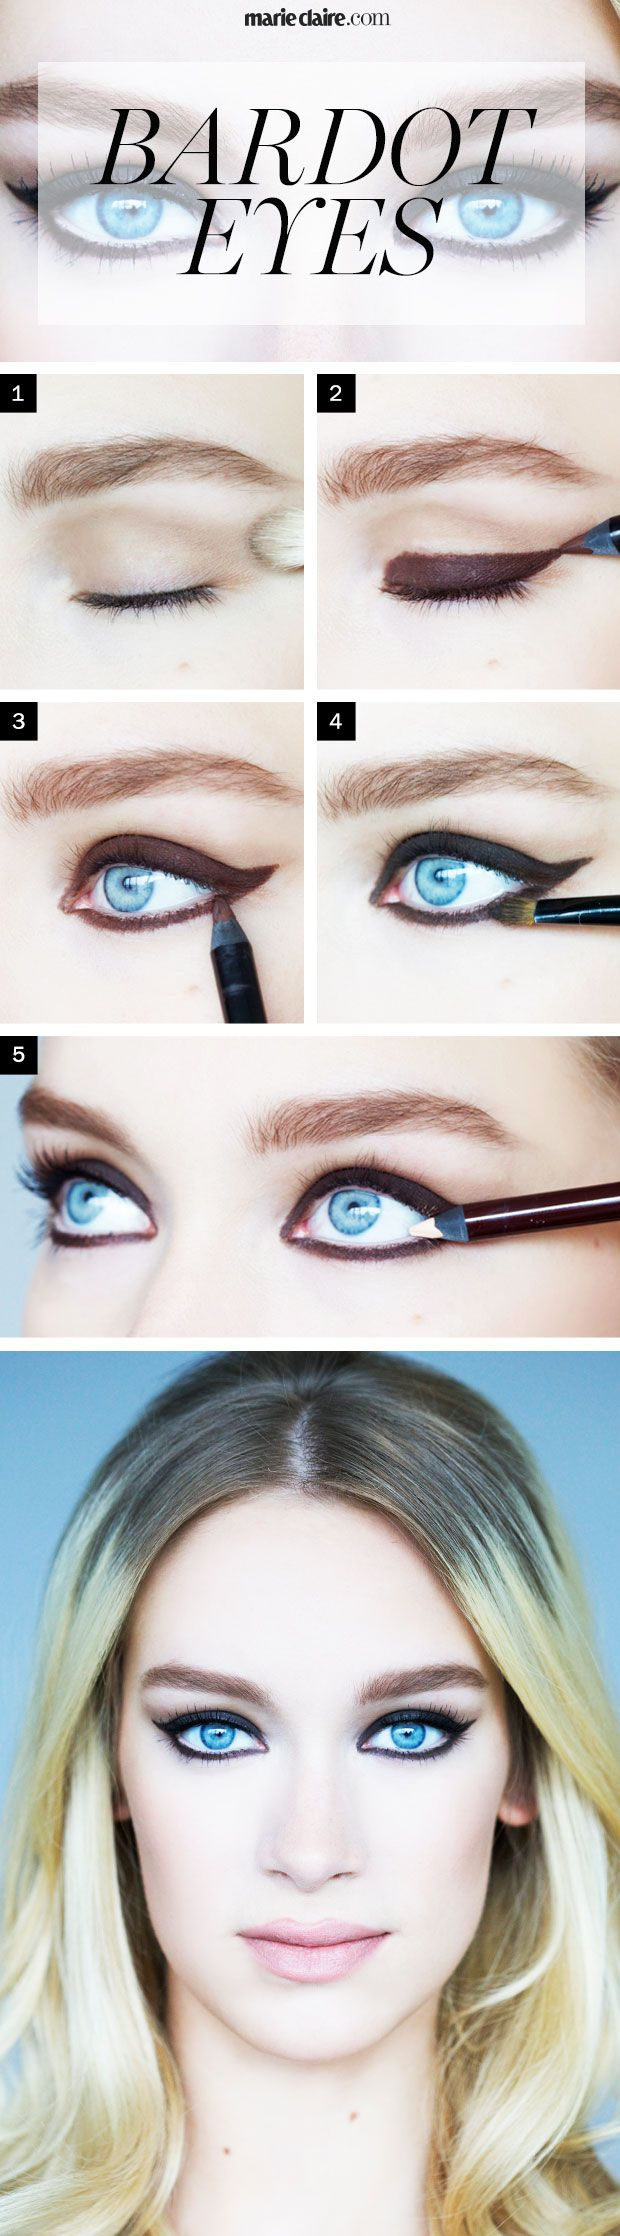 Makeup How-To: Brigitte Bardot Eye Makeup | Dramatic Tutorial for a Pretty & Awe...